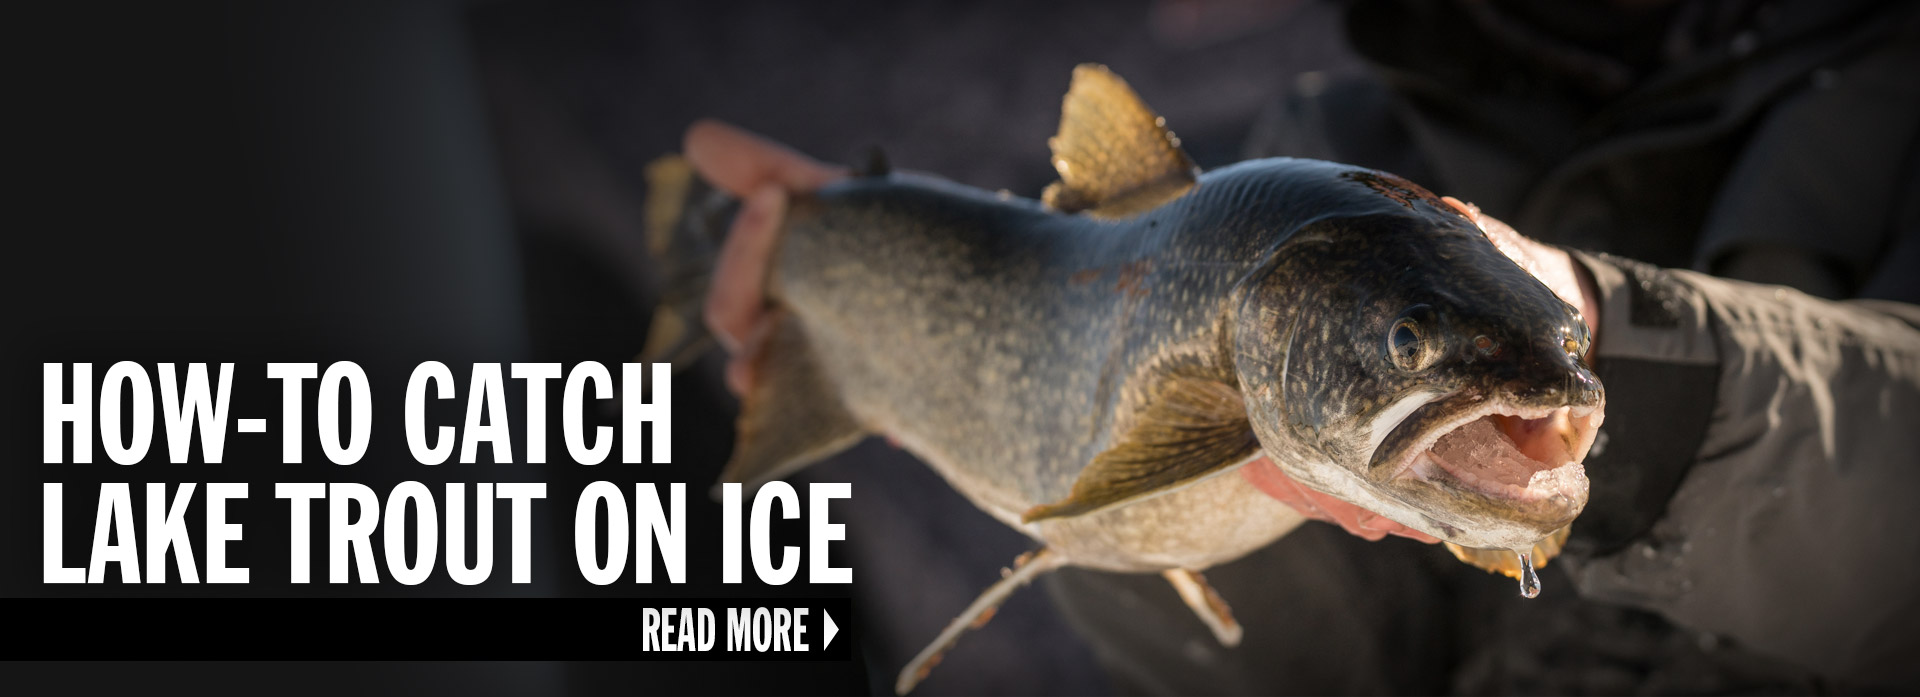 How-To Catch Lake Trout On Ice